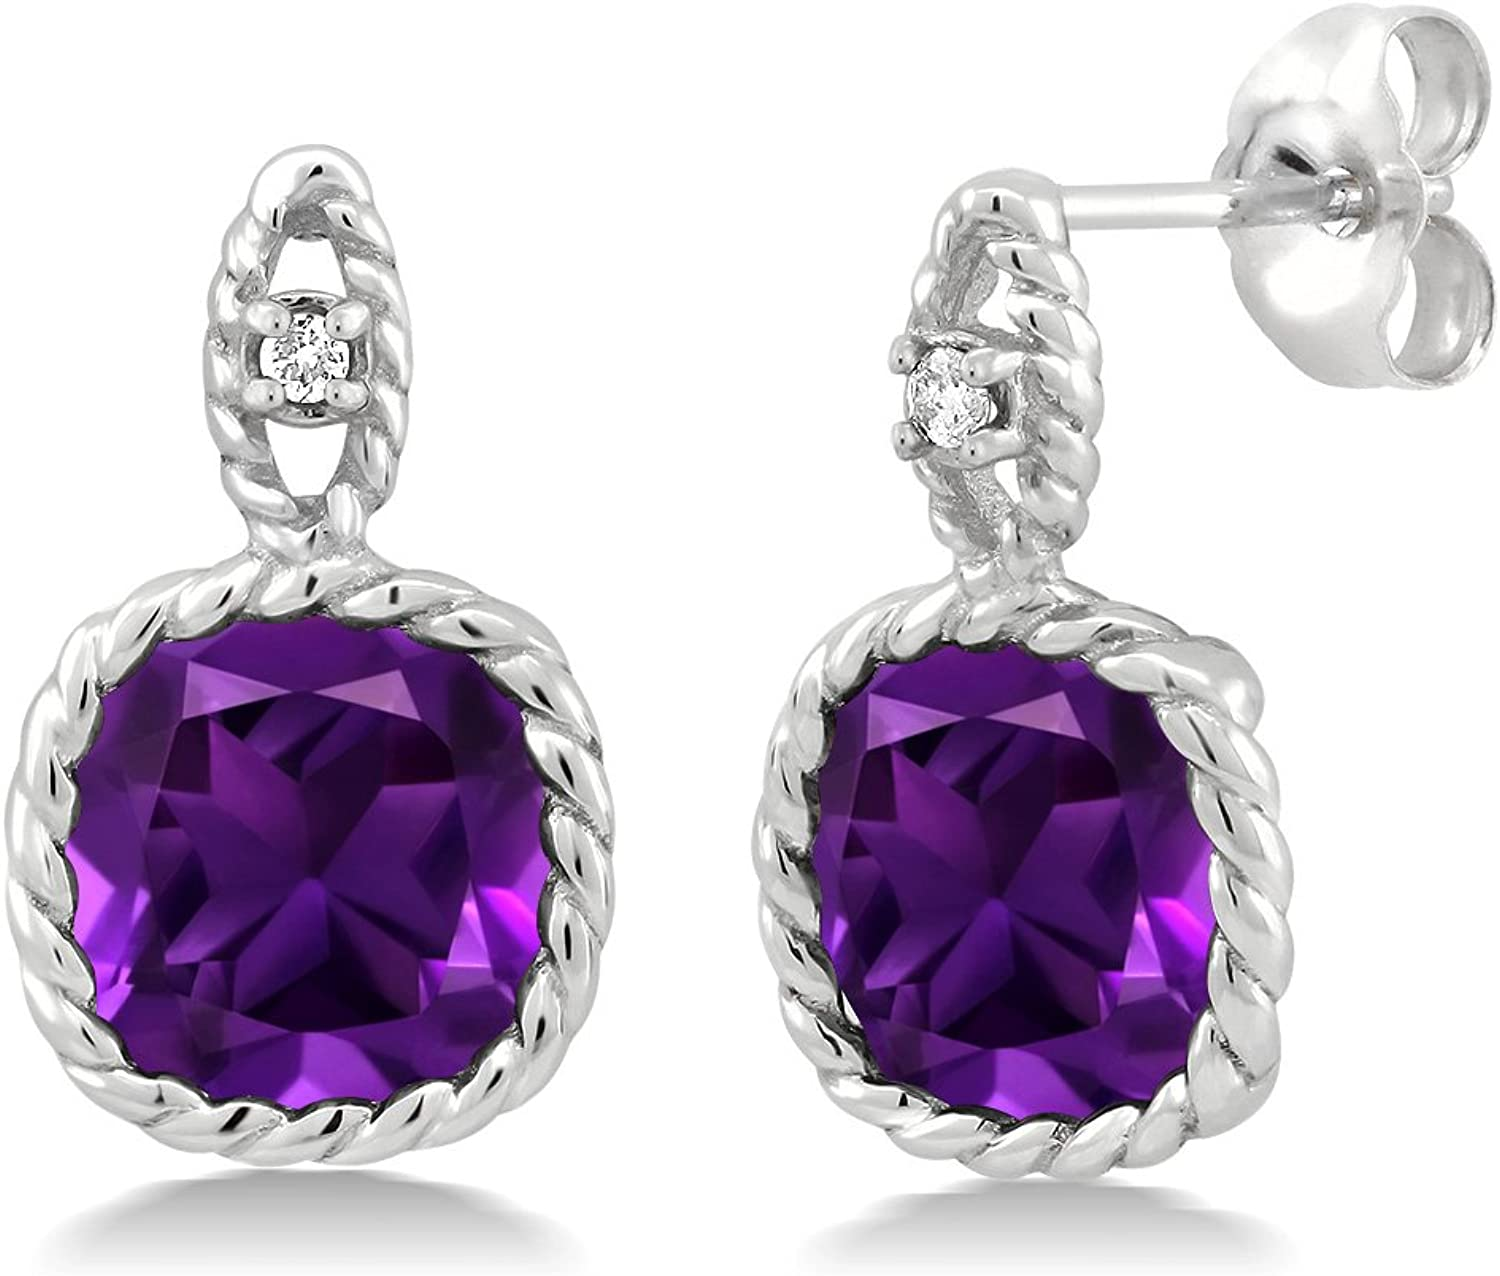 10K White gold 4.10 Ct 8mm Cushion Purple Amethyst and Diamond Cable Earrings